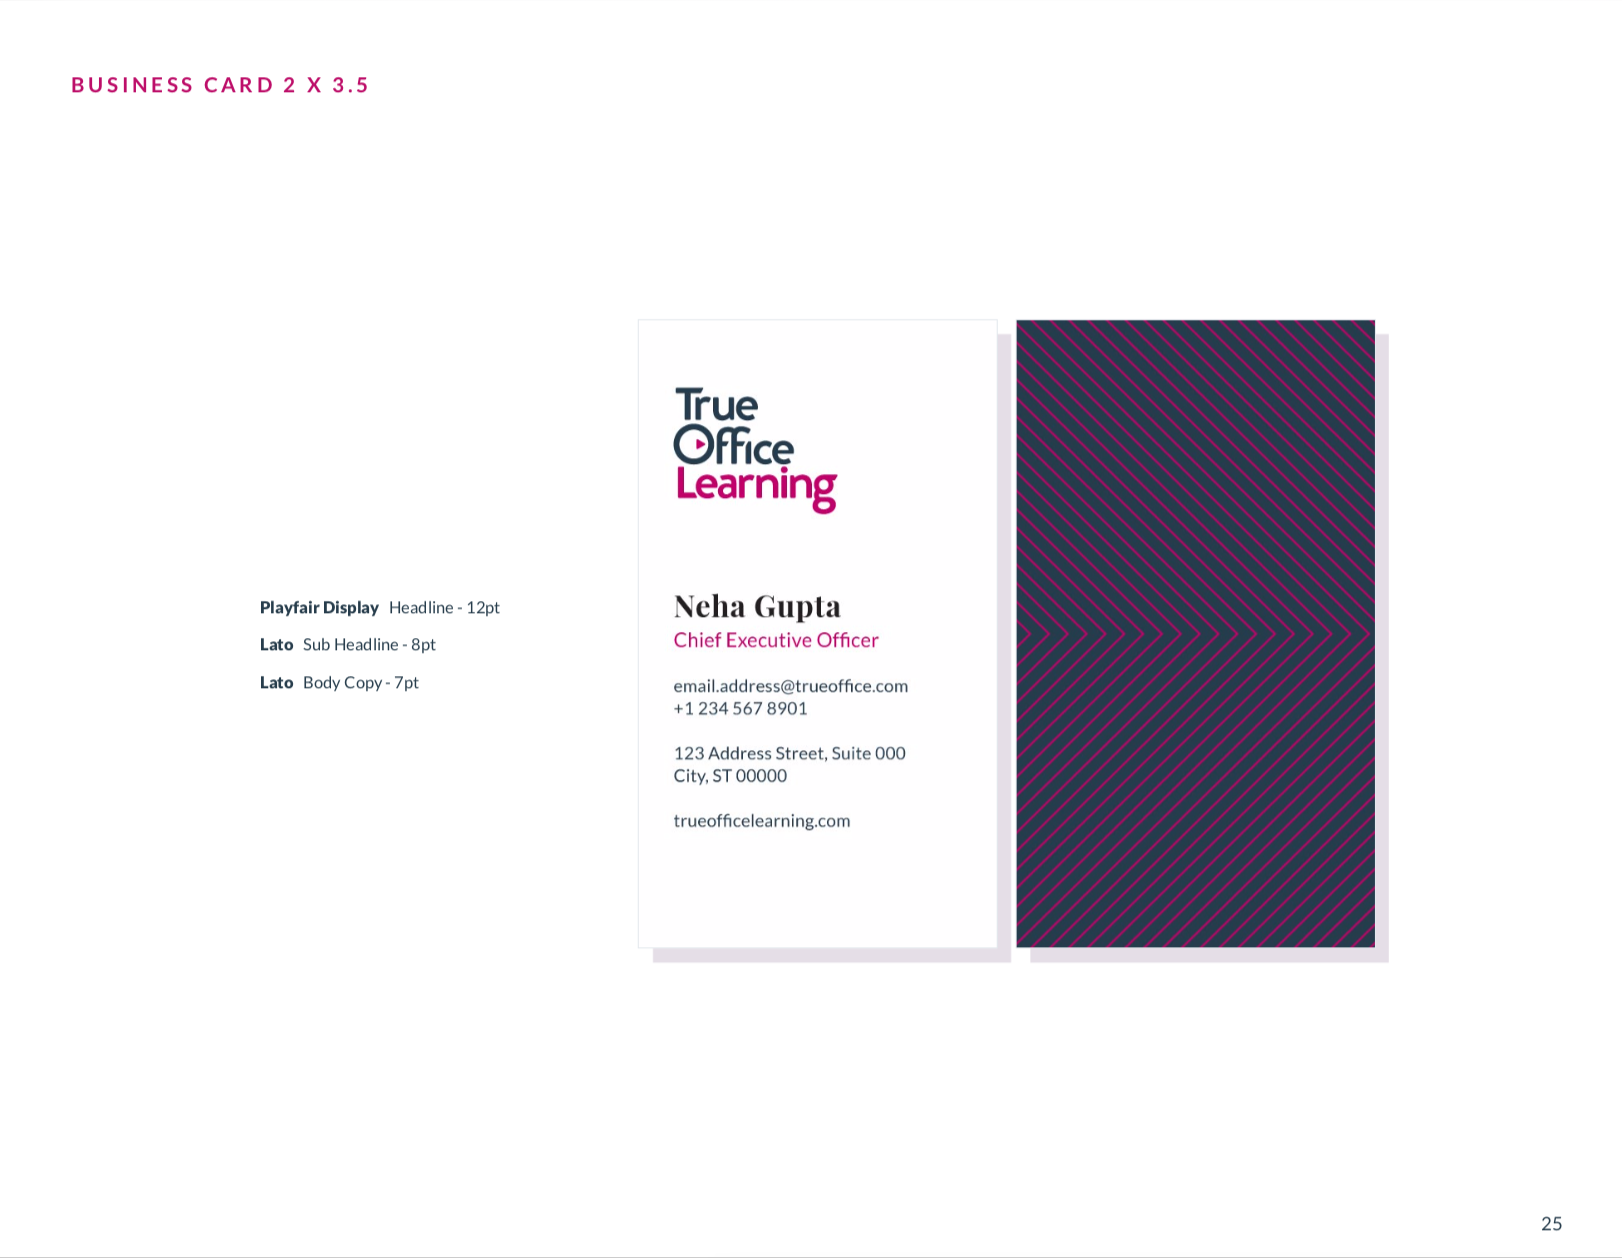 TOL business card